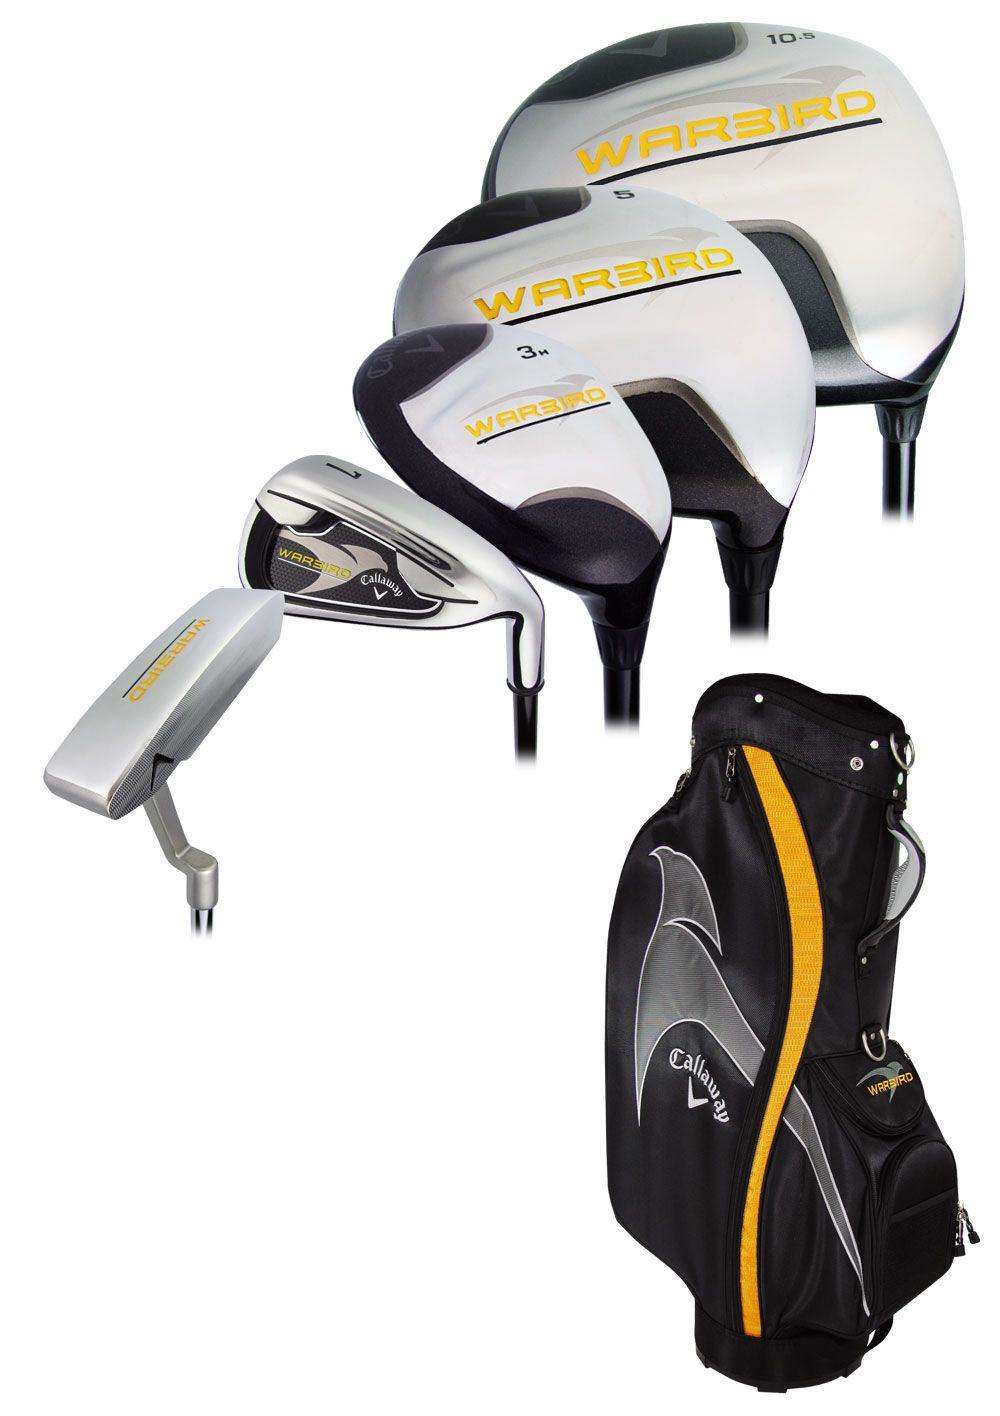 Callaway Warbird Complete Set With Bag Graphite L Rock Bottom Golf